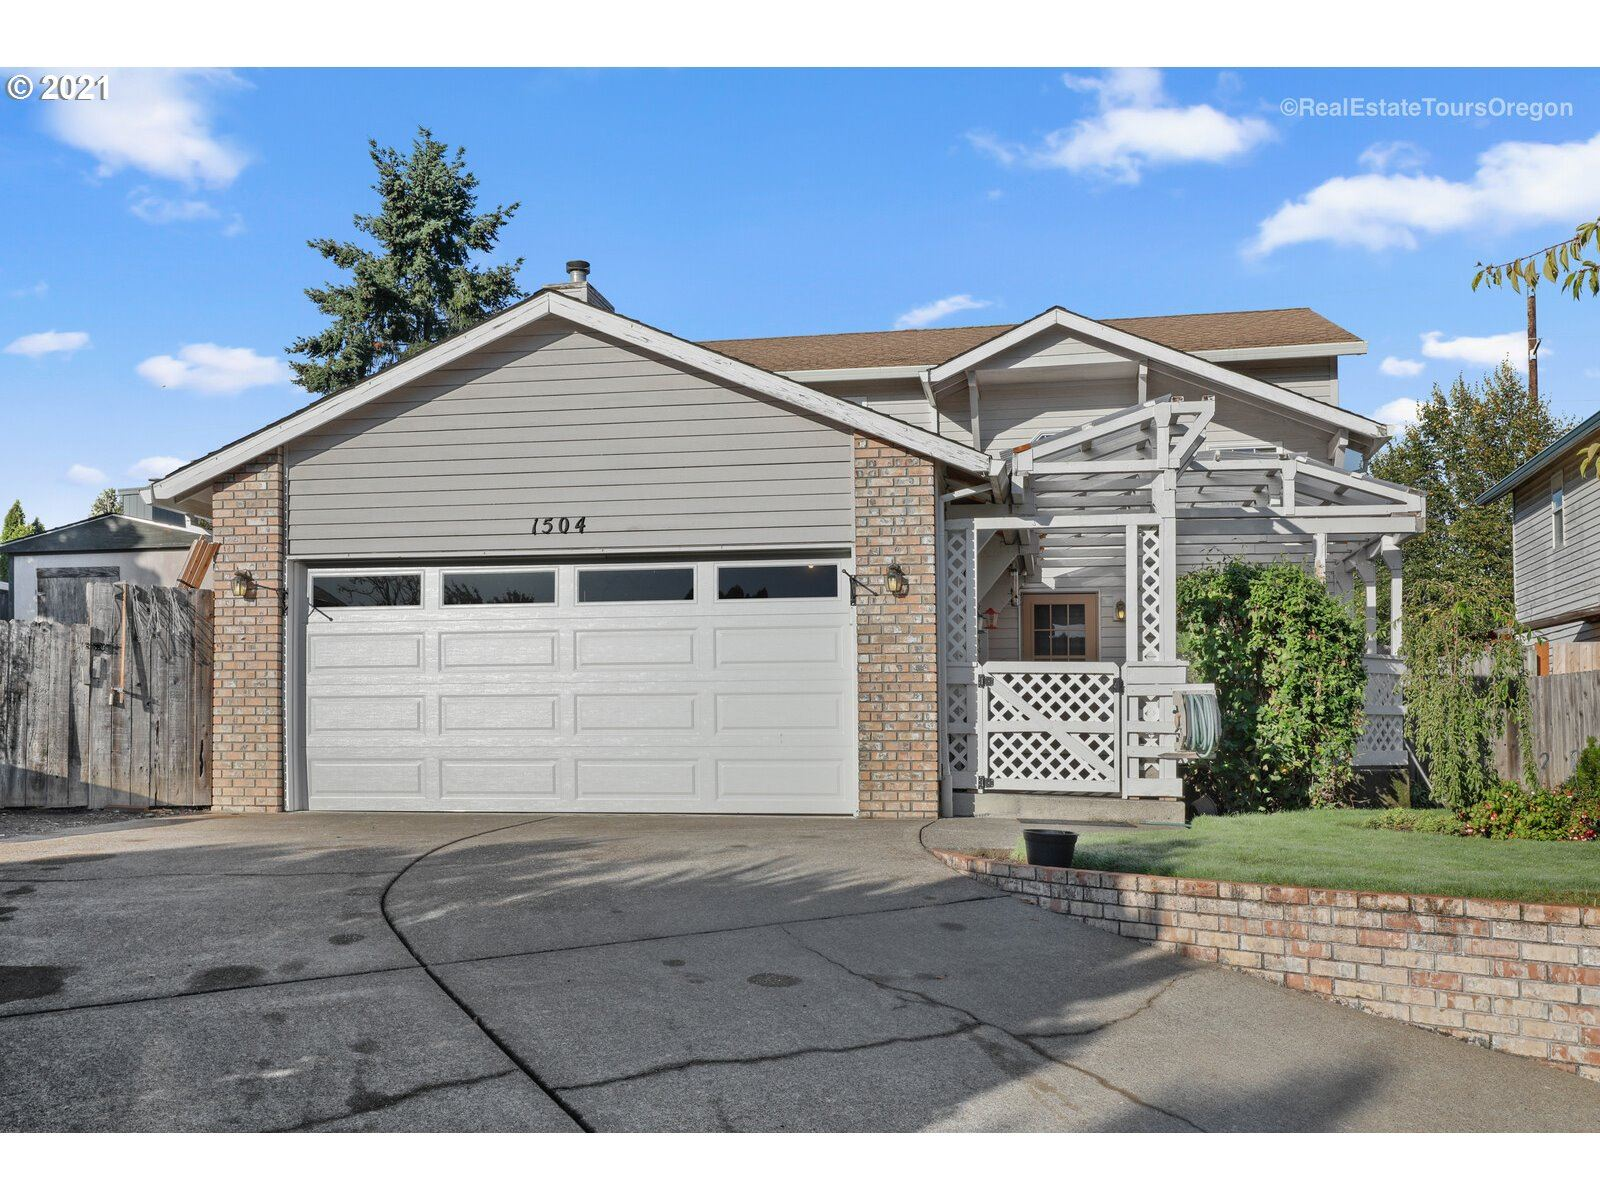 1504 RODLUN CT, Forest Grove, OR 97116 - MLS#: 21291561